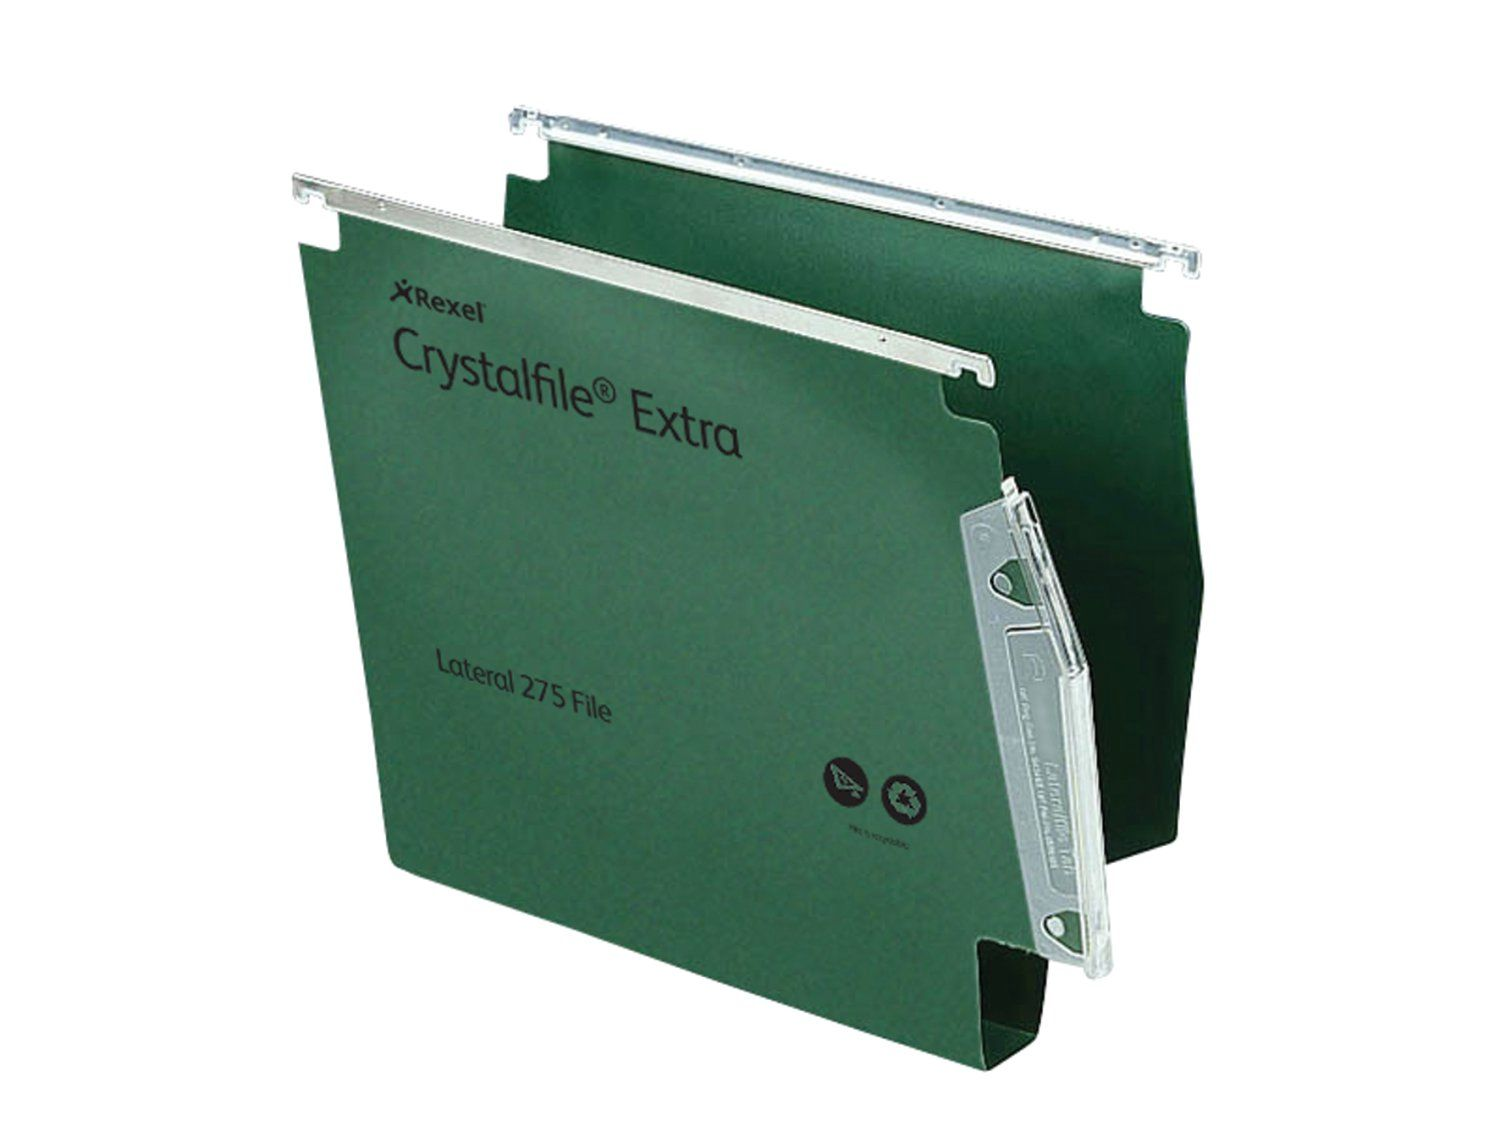 Rexel Crystalfile Extra Lateral File PP 30mm Base Green PK25